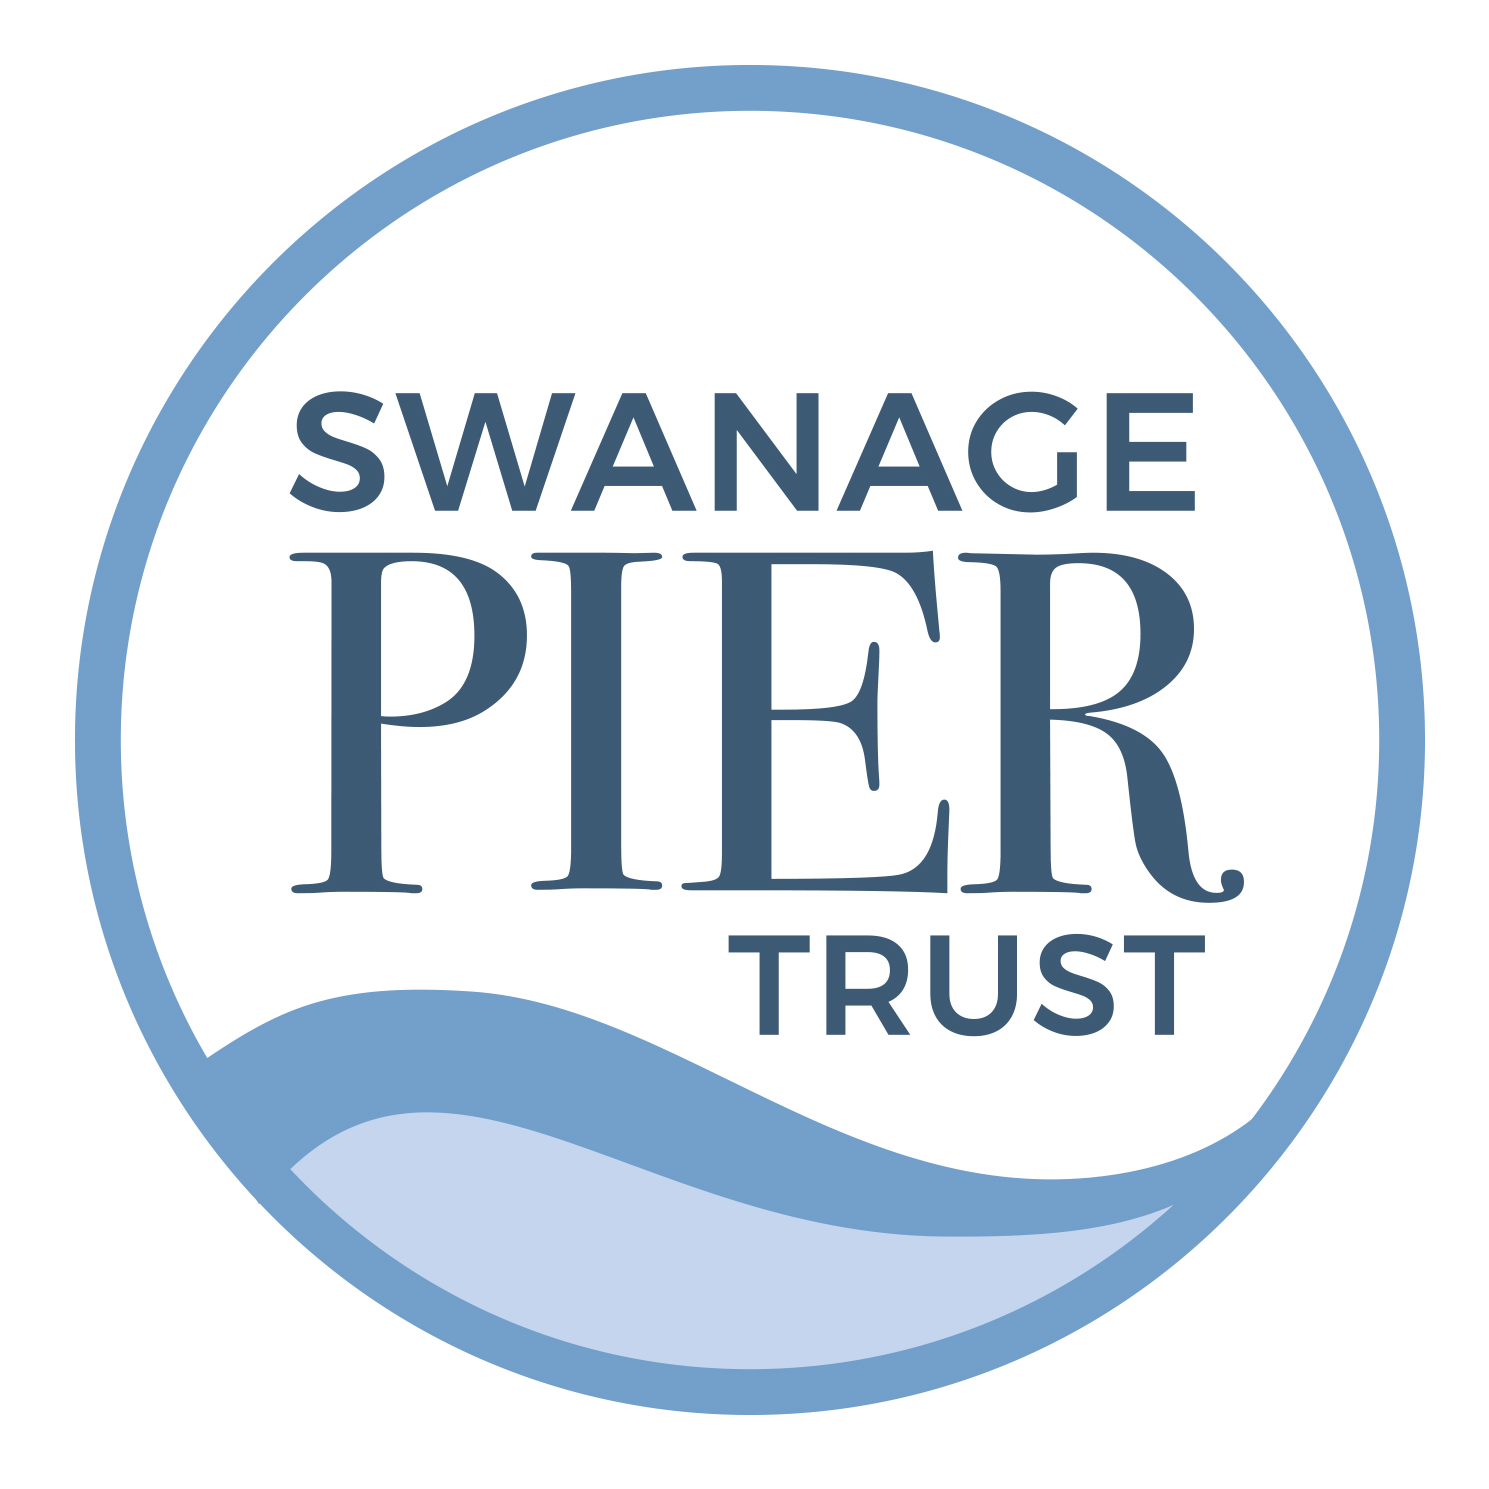 Hosted By Swanage Pier Trust